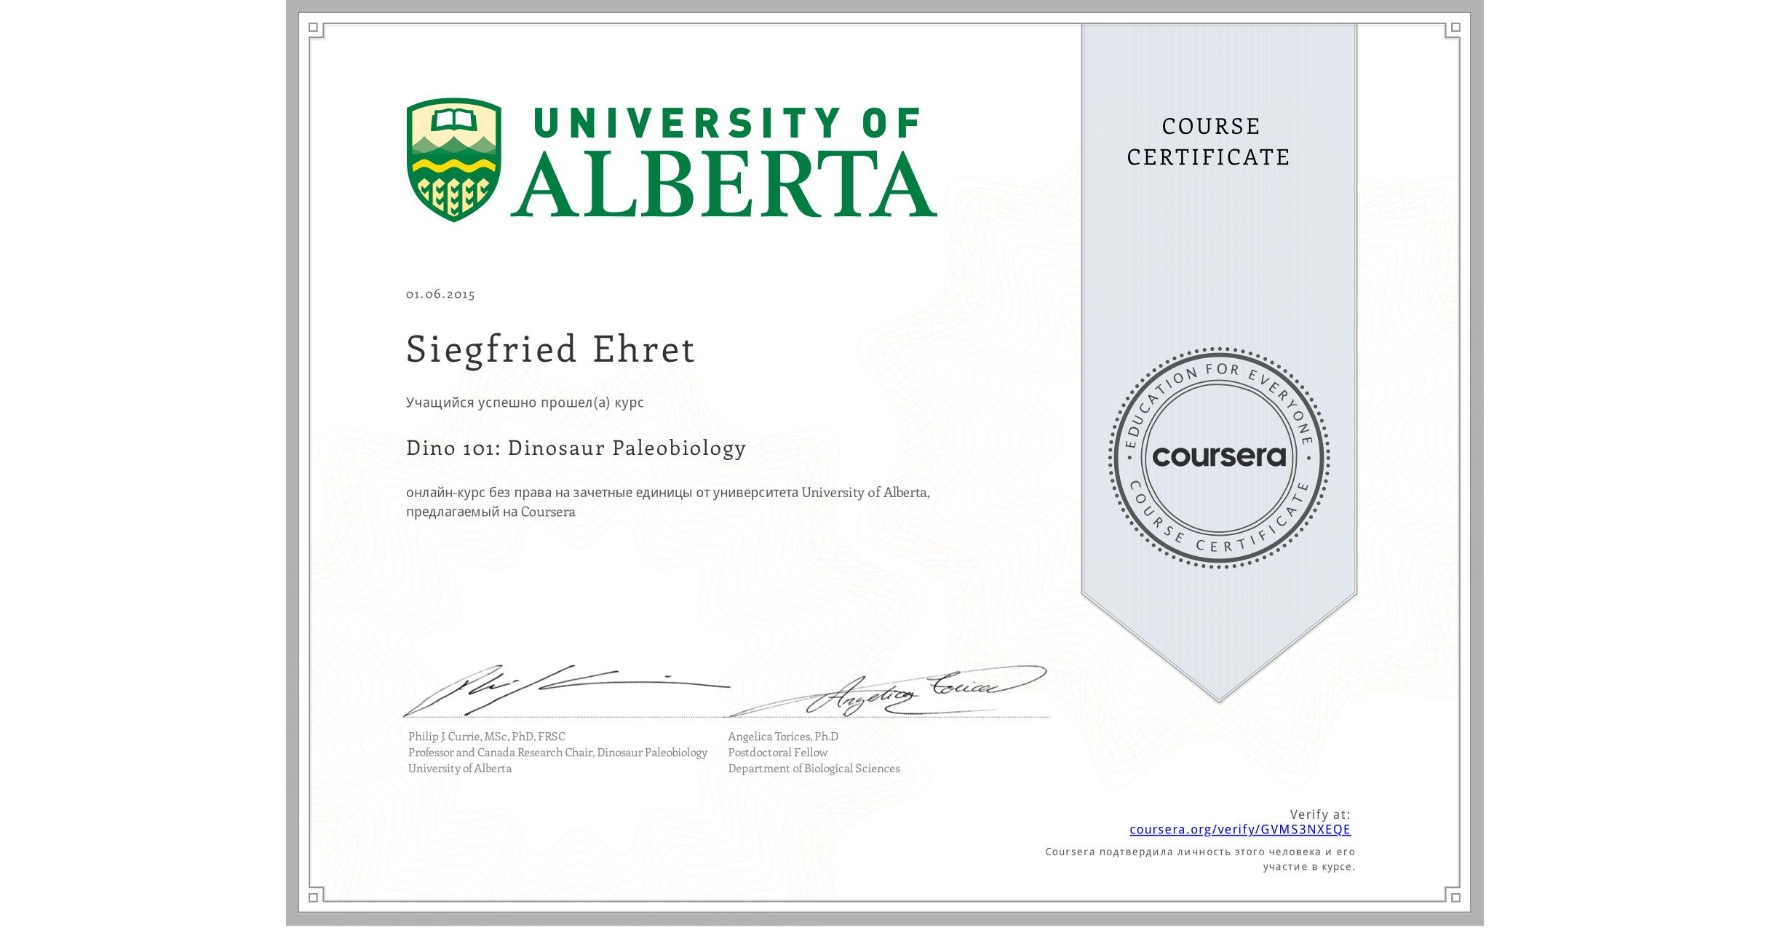 View certificate for Siegfried Ehret, Dino 101: Dinosaur Paleobiology, an online non-credit course authorized by University of Alberta and offered through Coursera